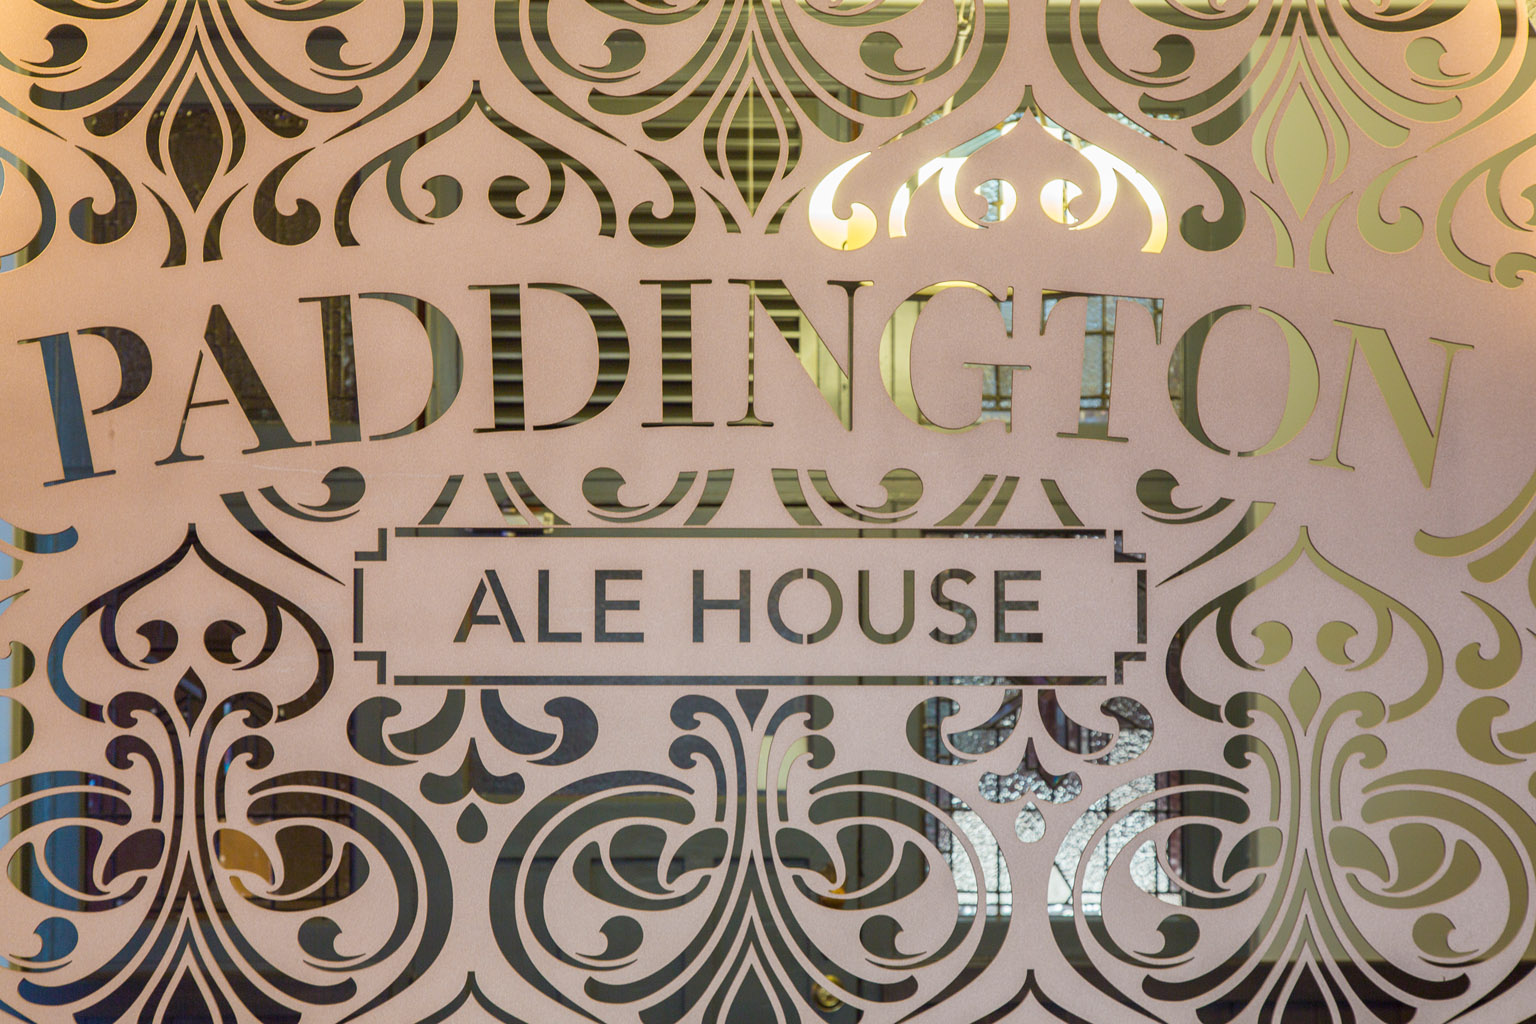 Paddington Ale House Blog Part I